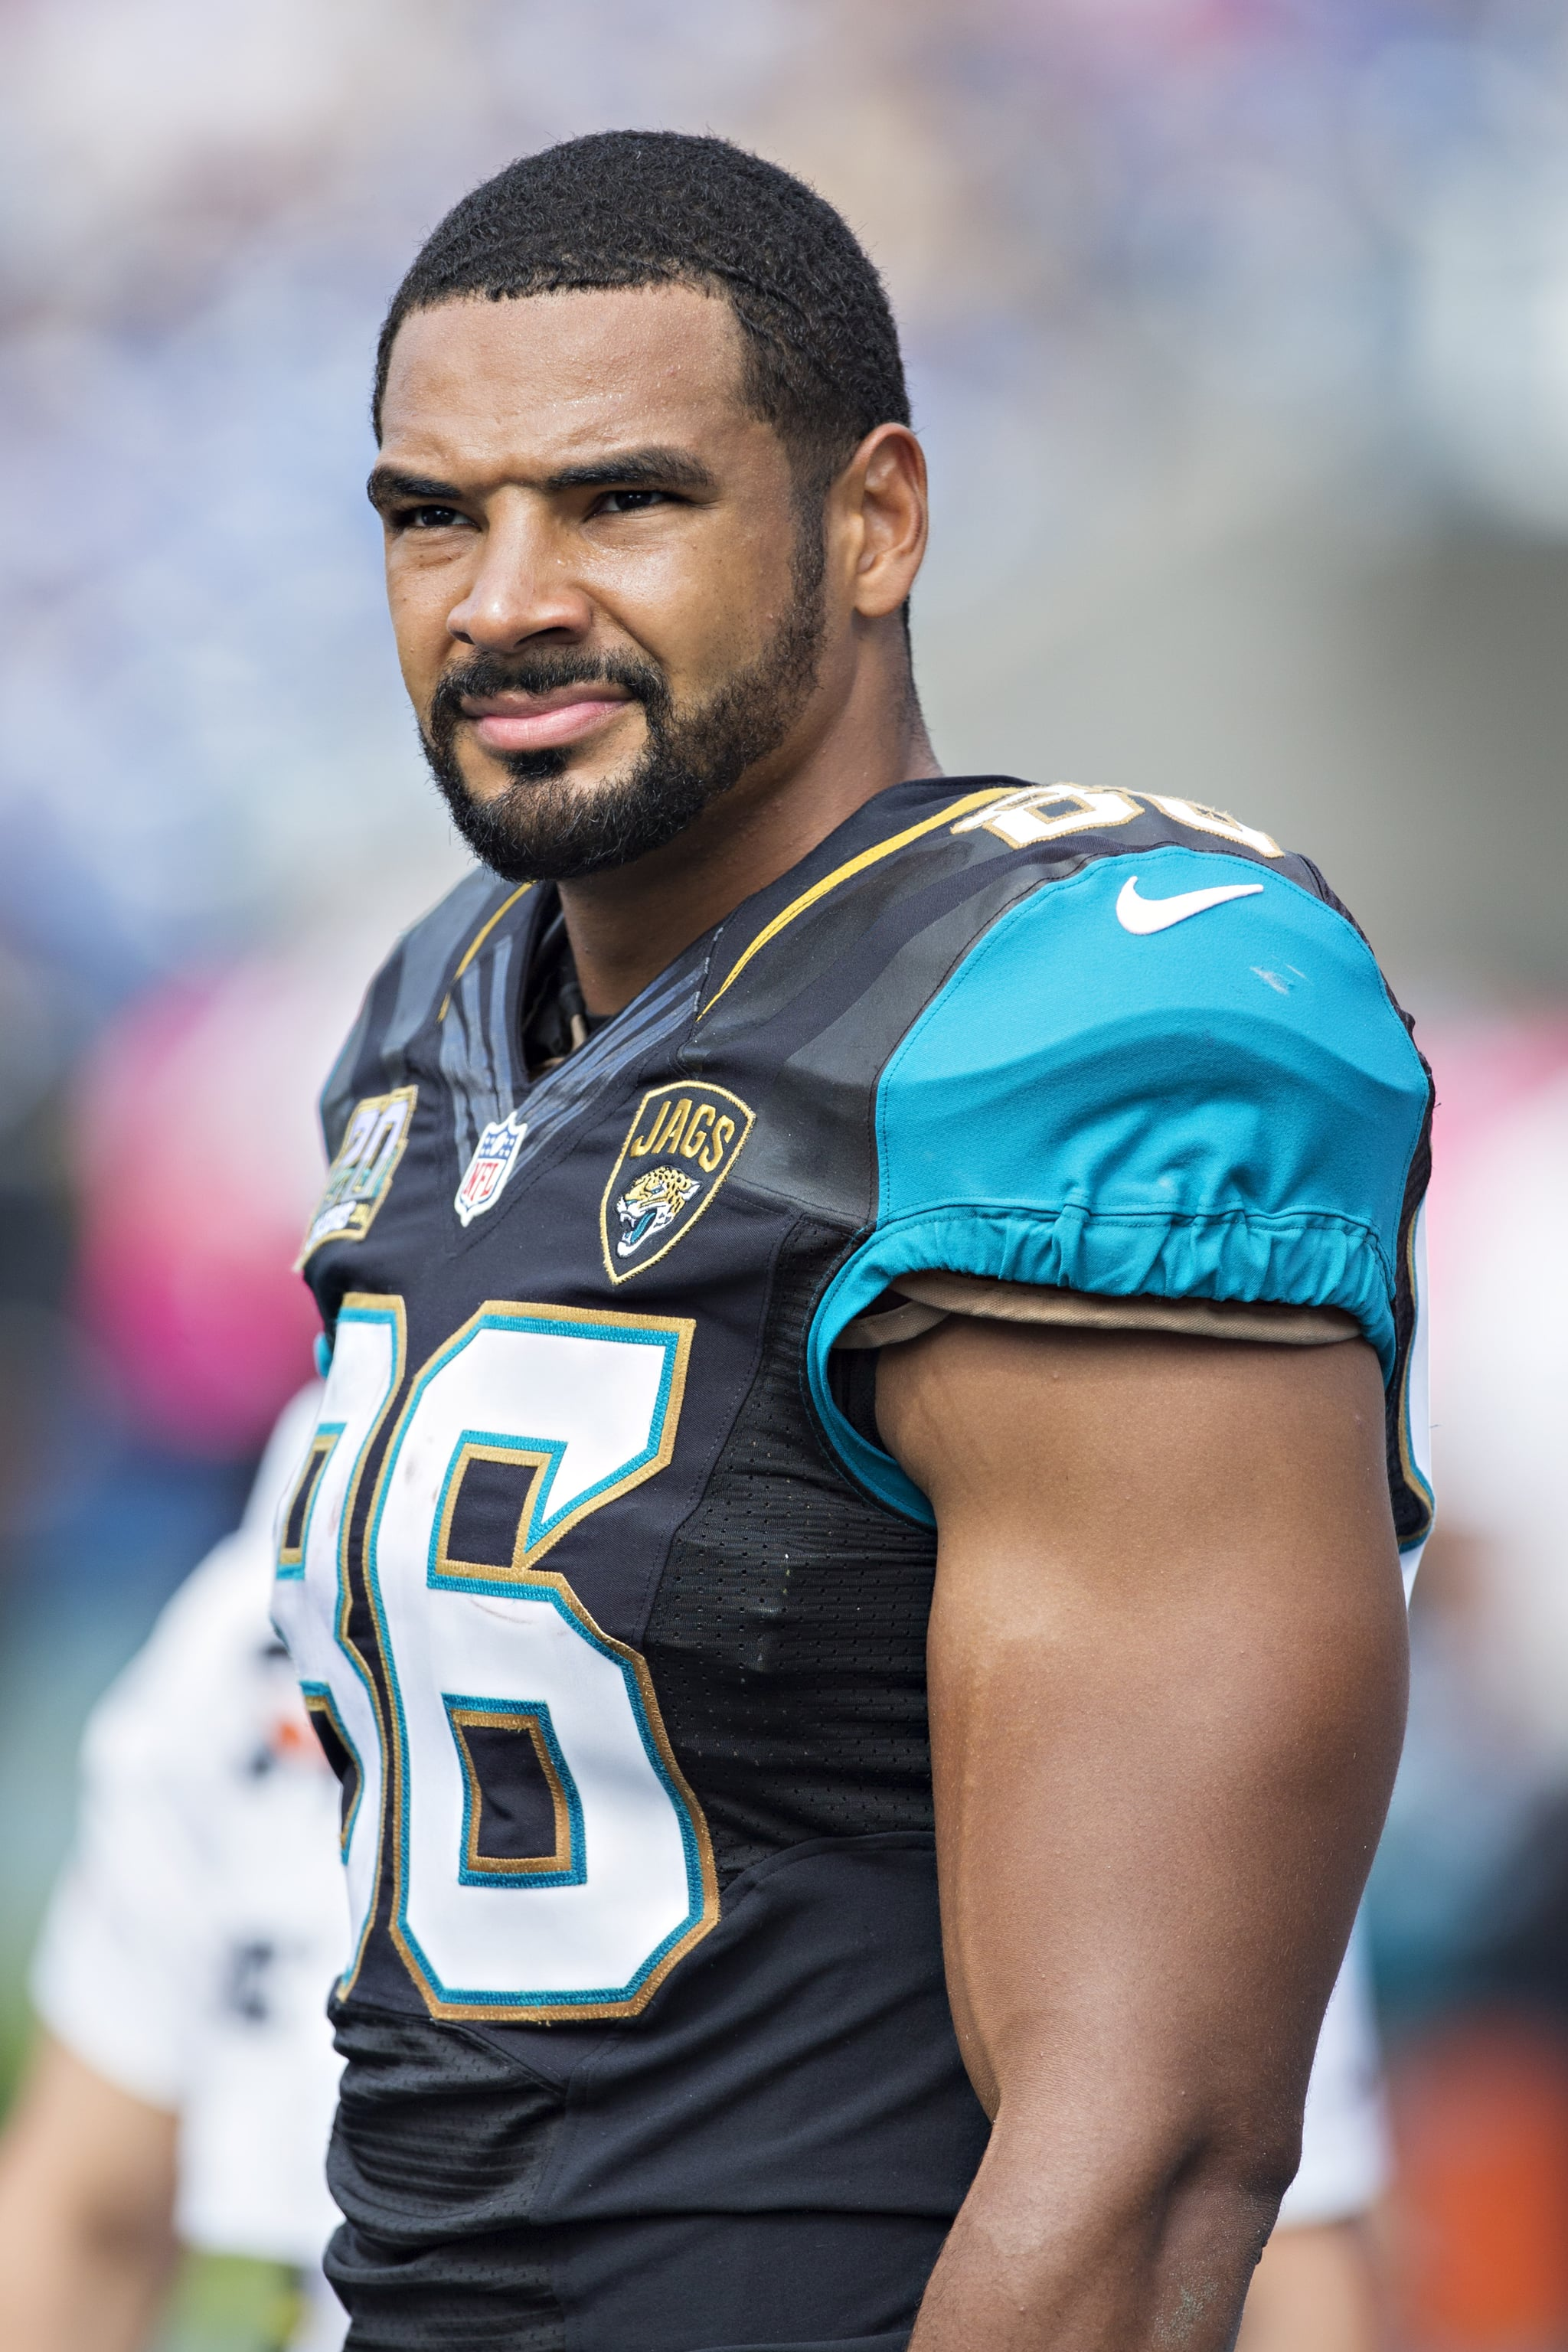 NASHVILLE, TN - OCTOBER 12:  Clay Harbor #86 of the Jacksonville Jaguars on the sidelines during a game against the Tennessee Titans at LP Field on October 12, 2014 in Nashville, Tennessee.  The Titans defeated the Jaguars 16-14.  (Photo by Wesley Hitt/Getty Images)